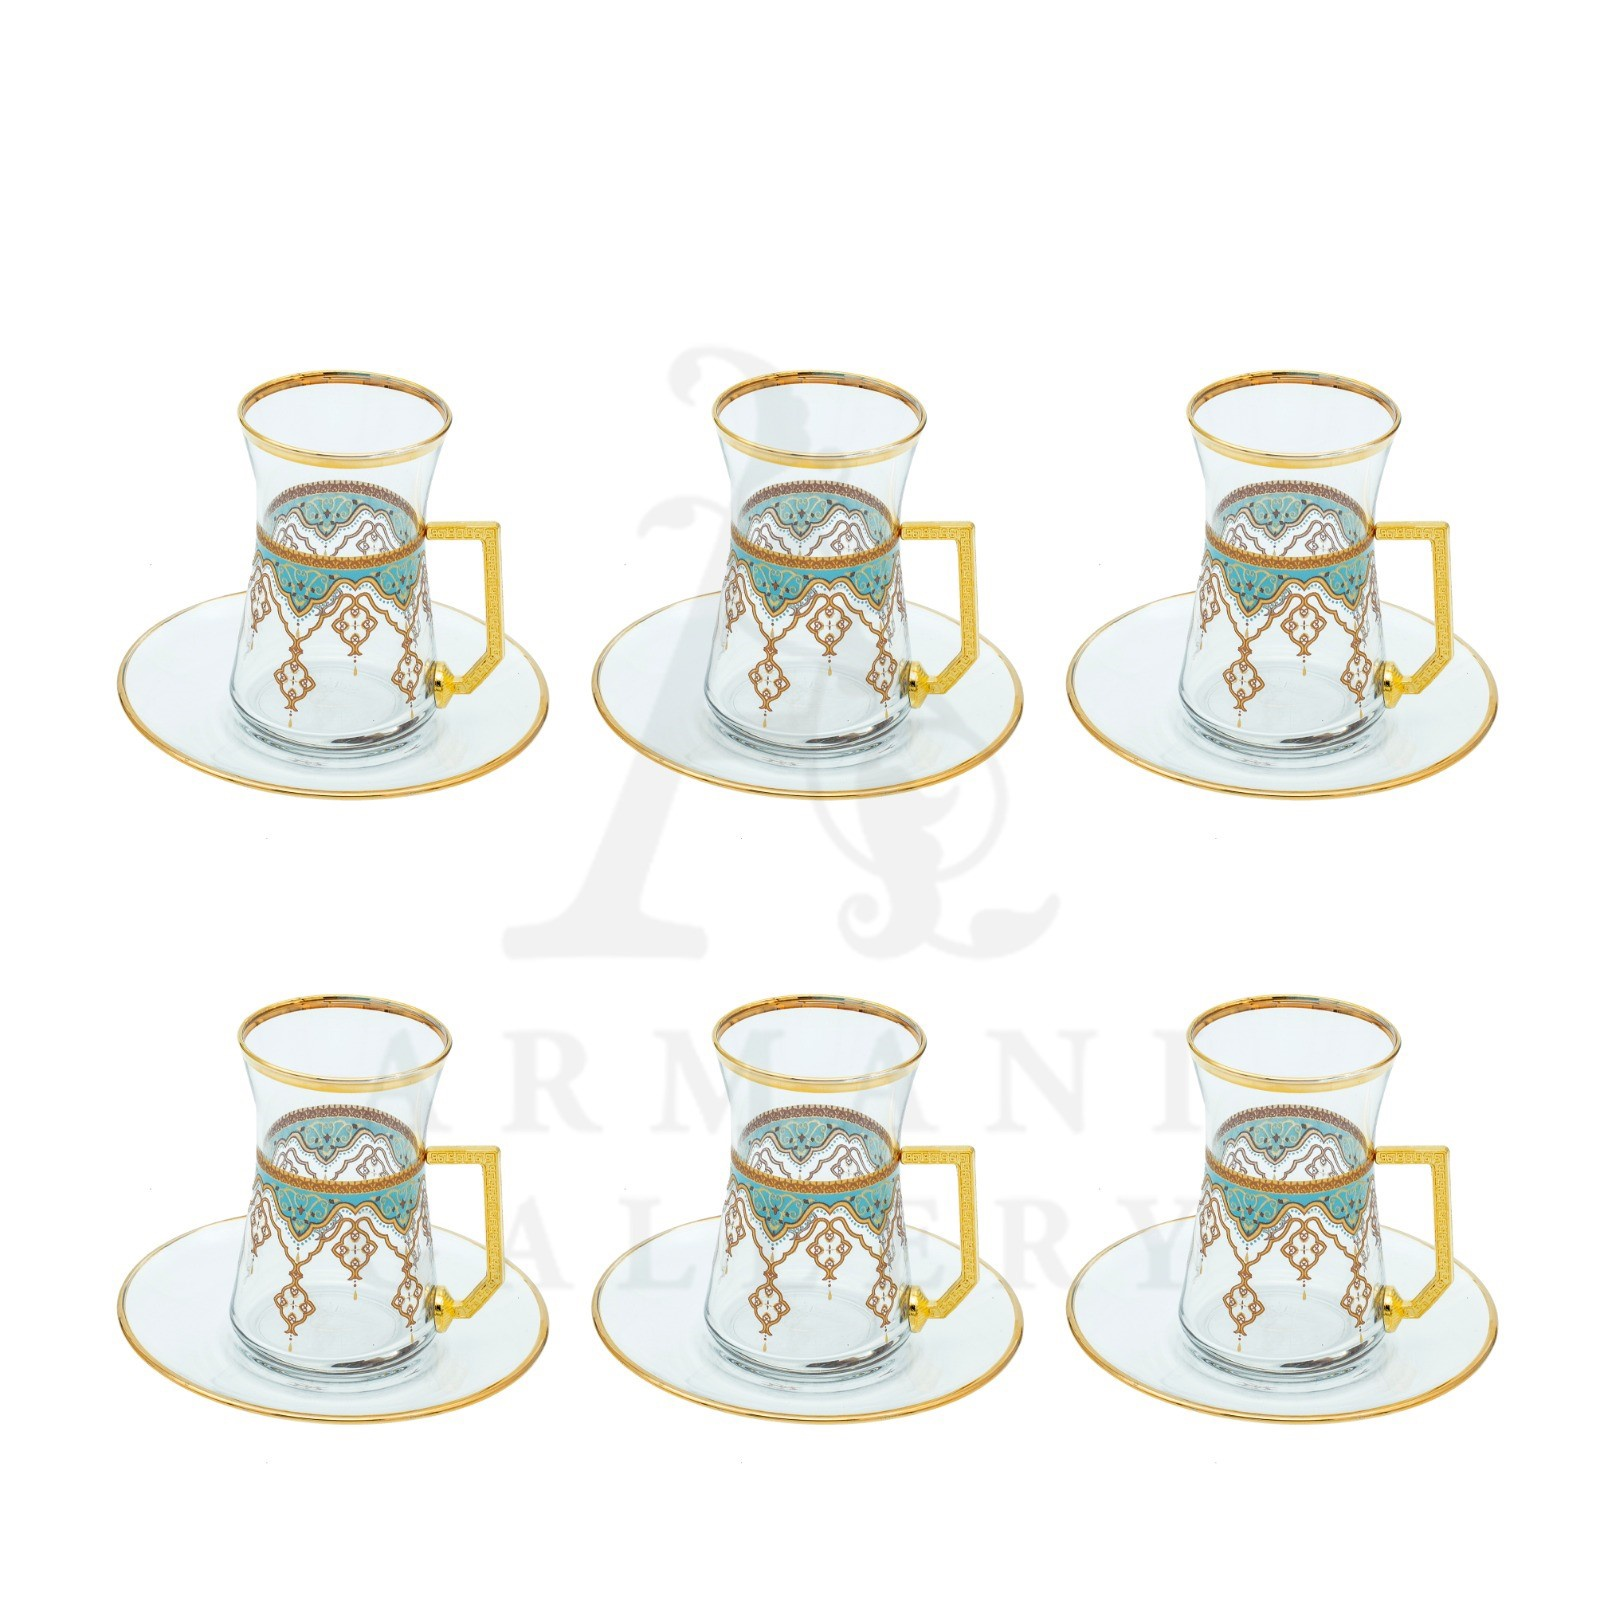 Buy Glass Drinking Tea Cup Set with Gold Handle and Saucer Green and Gold